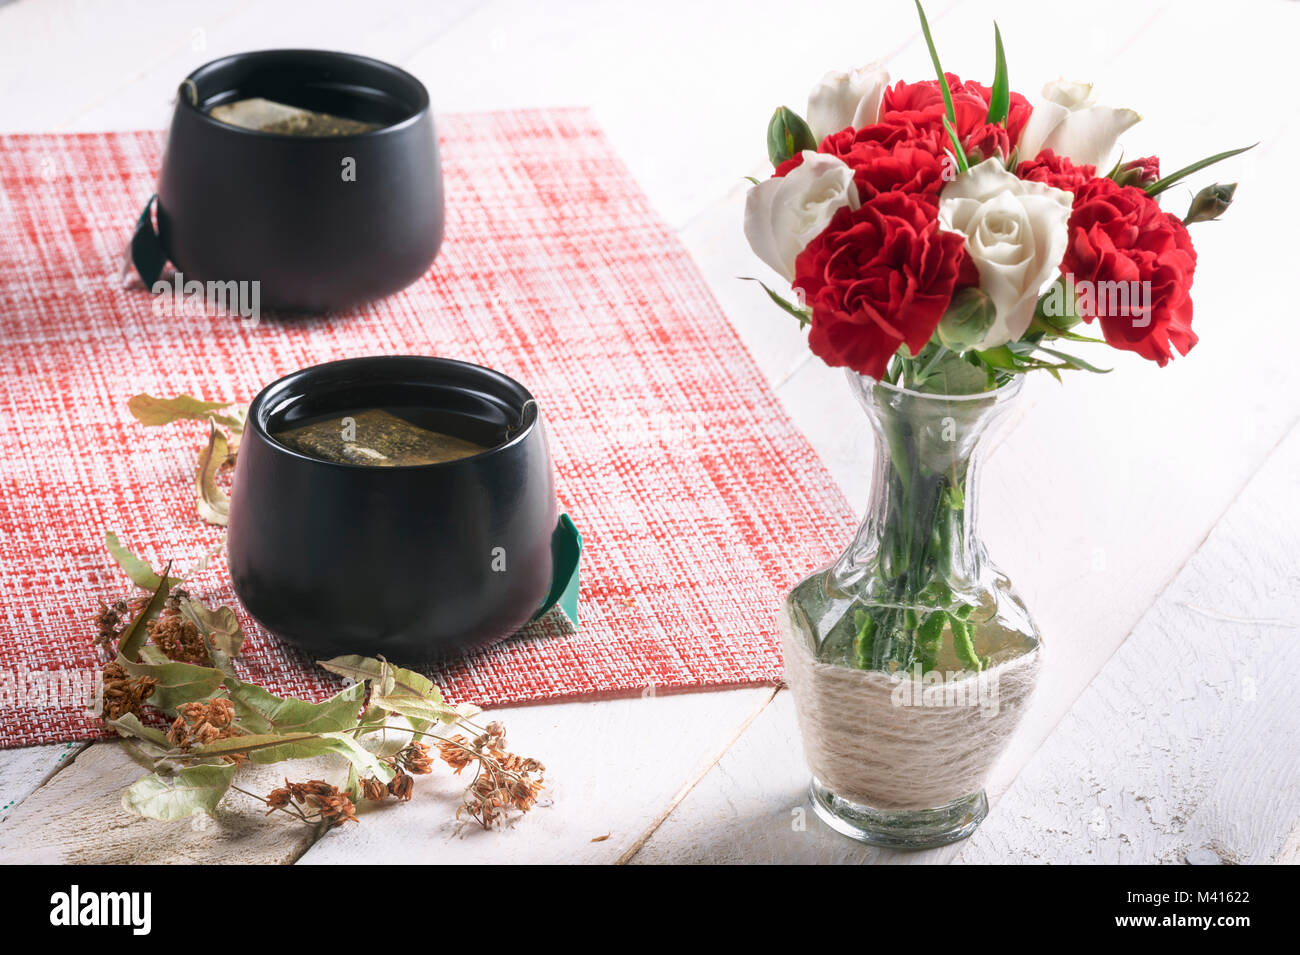 Bouquet roses in black vase stock photos bouquet roses in black bouquet of white roses and red carnations in a cute vase and two black cups of reviewsmspy